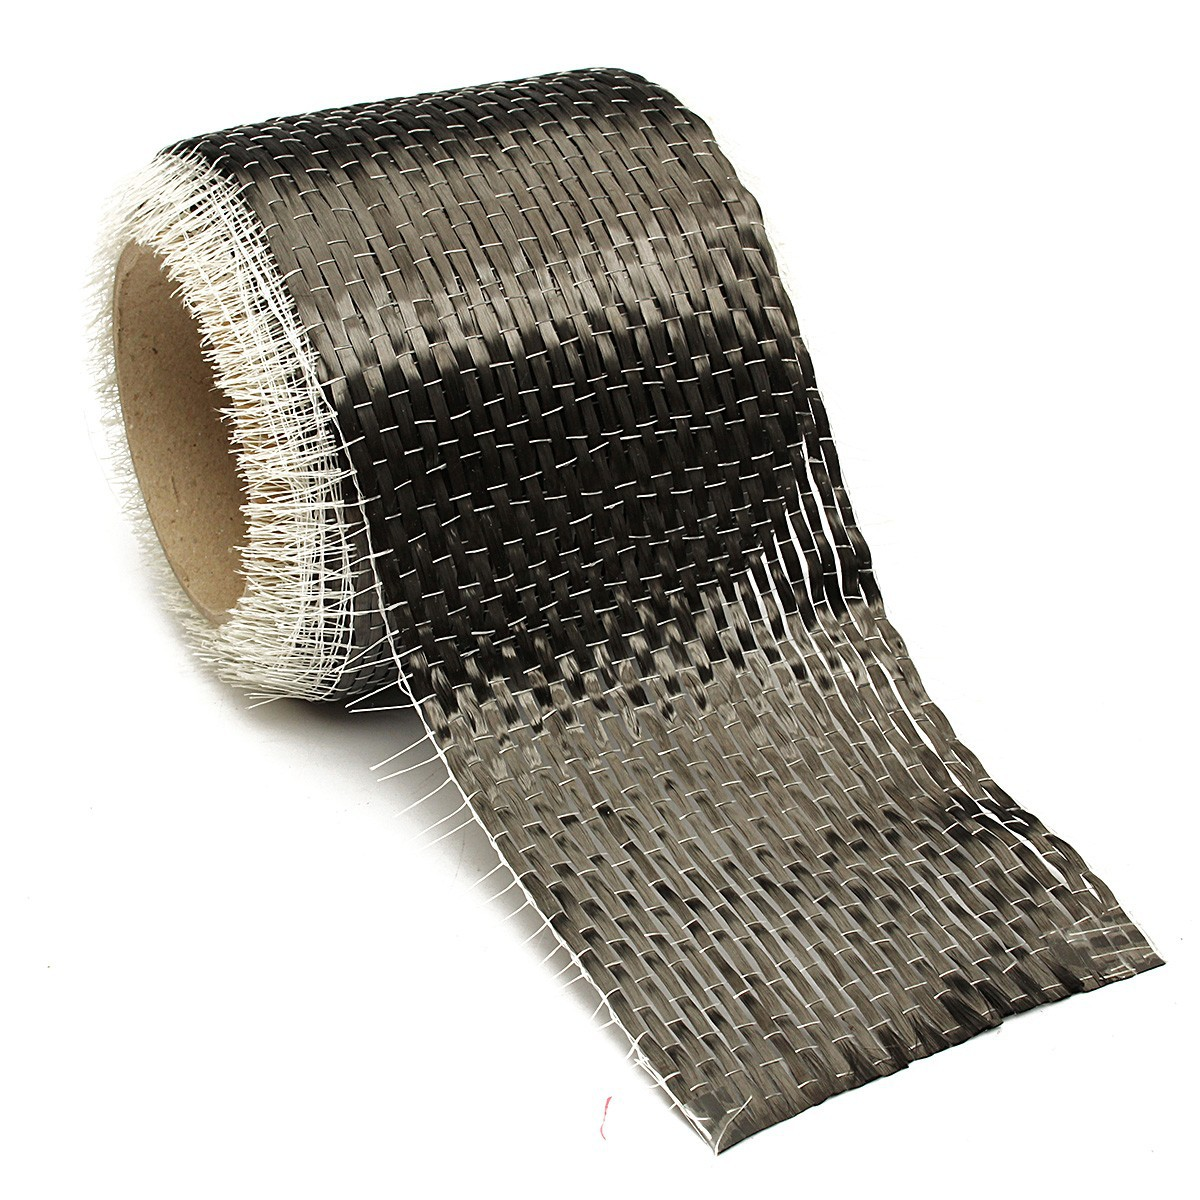 Unidirectional Carbon Fiber Cloth Fabric Tape 12k 2 5gpa